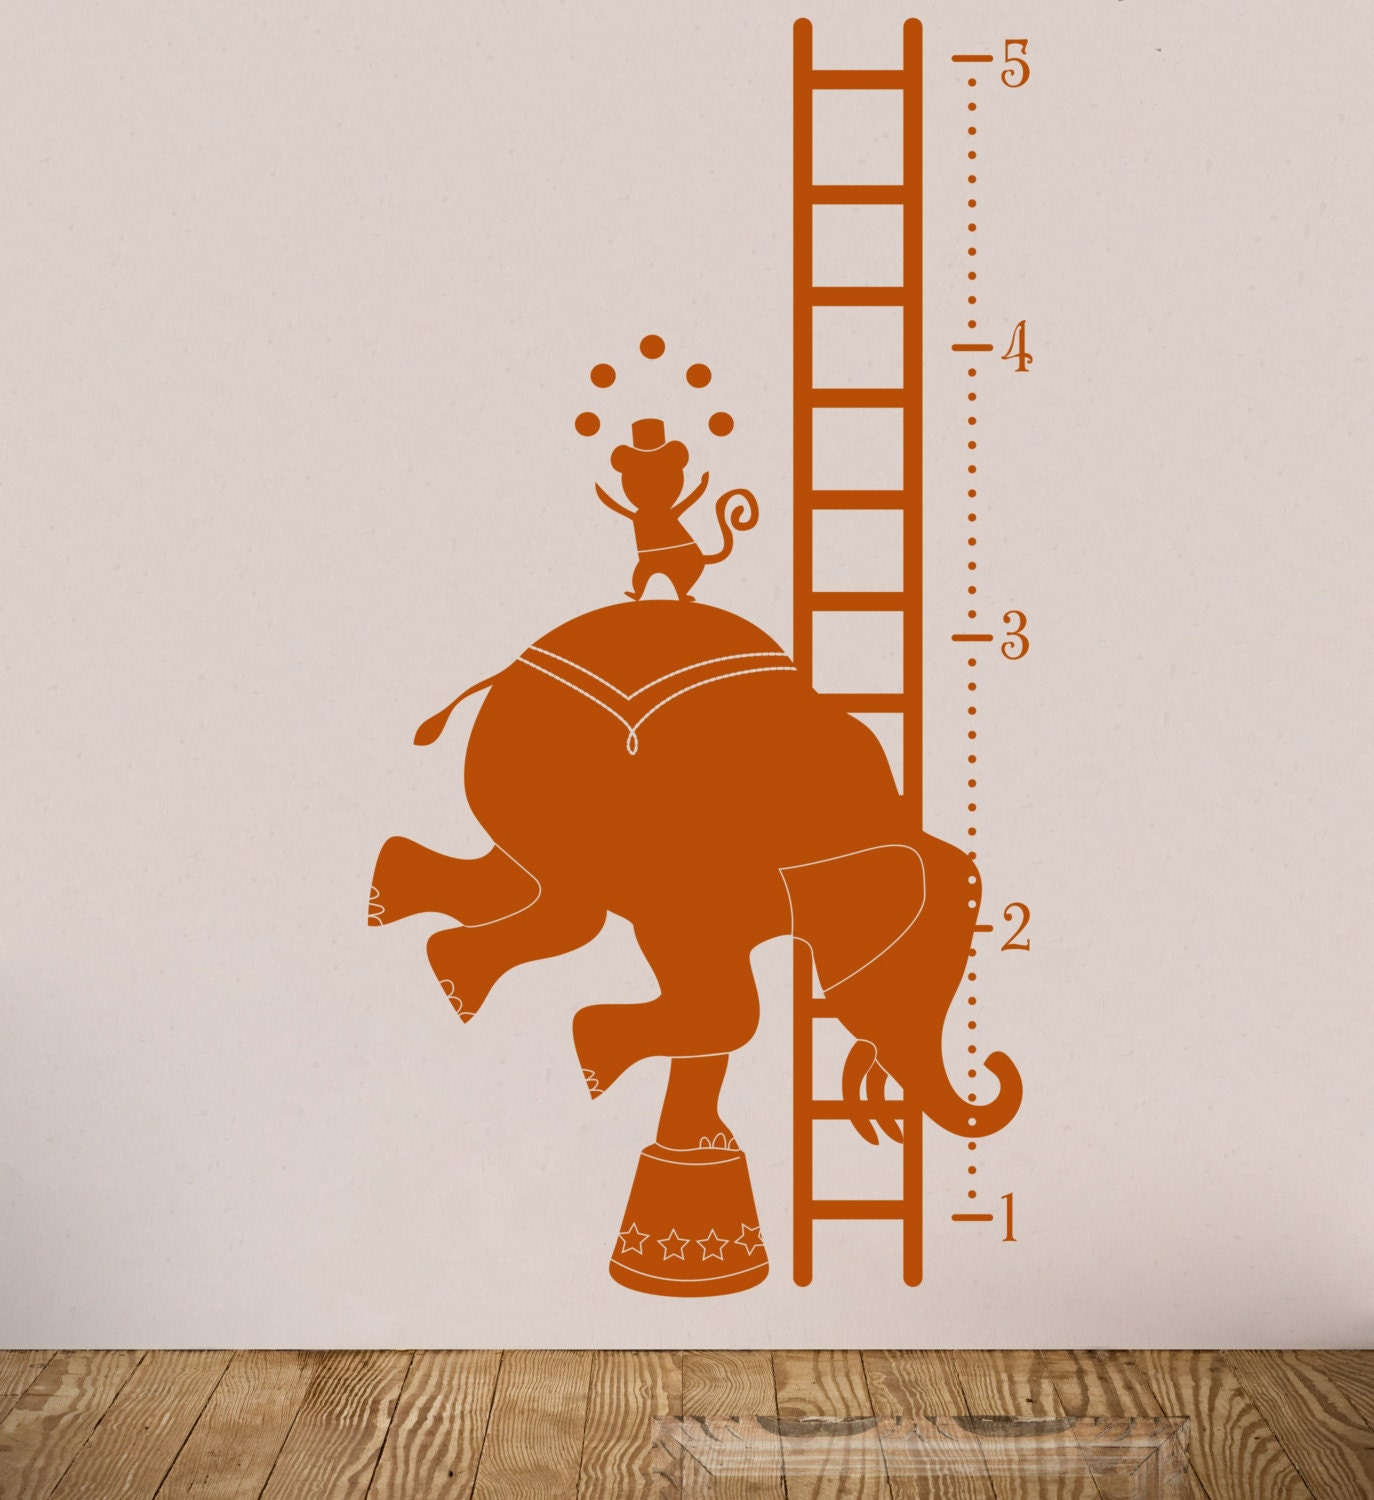 Etsy find wall decal growth charts circus growth chart item 30015 nvjuhfo Gallery